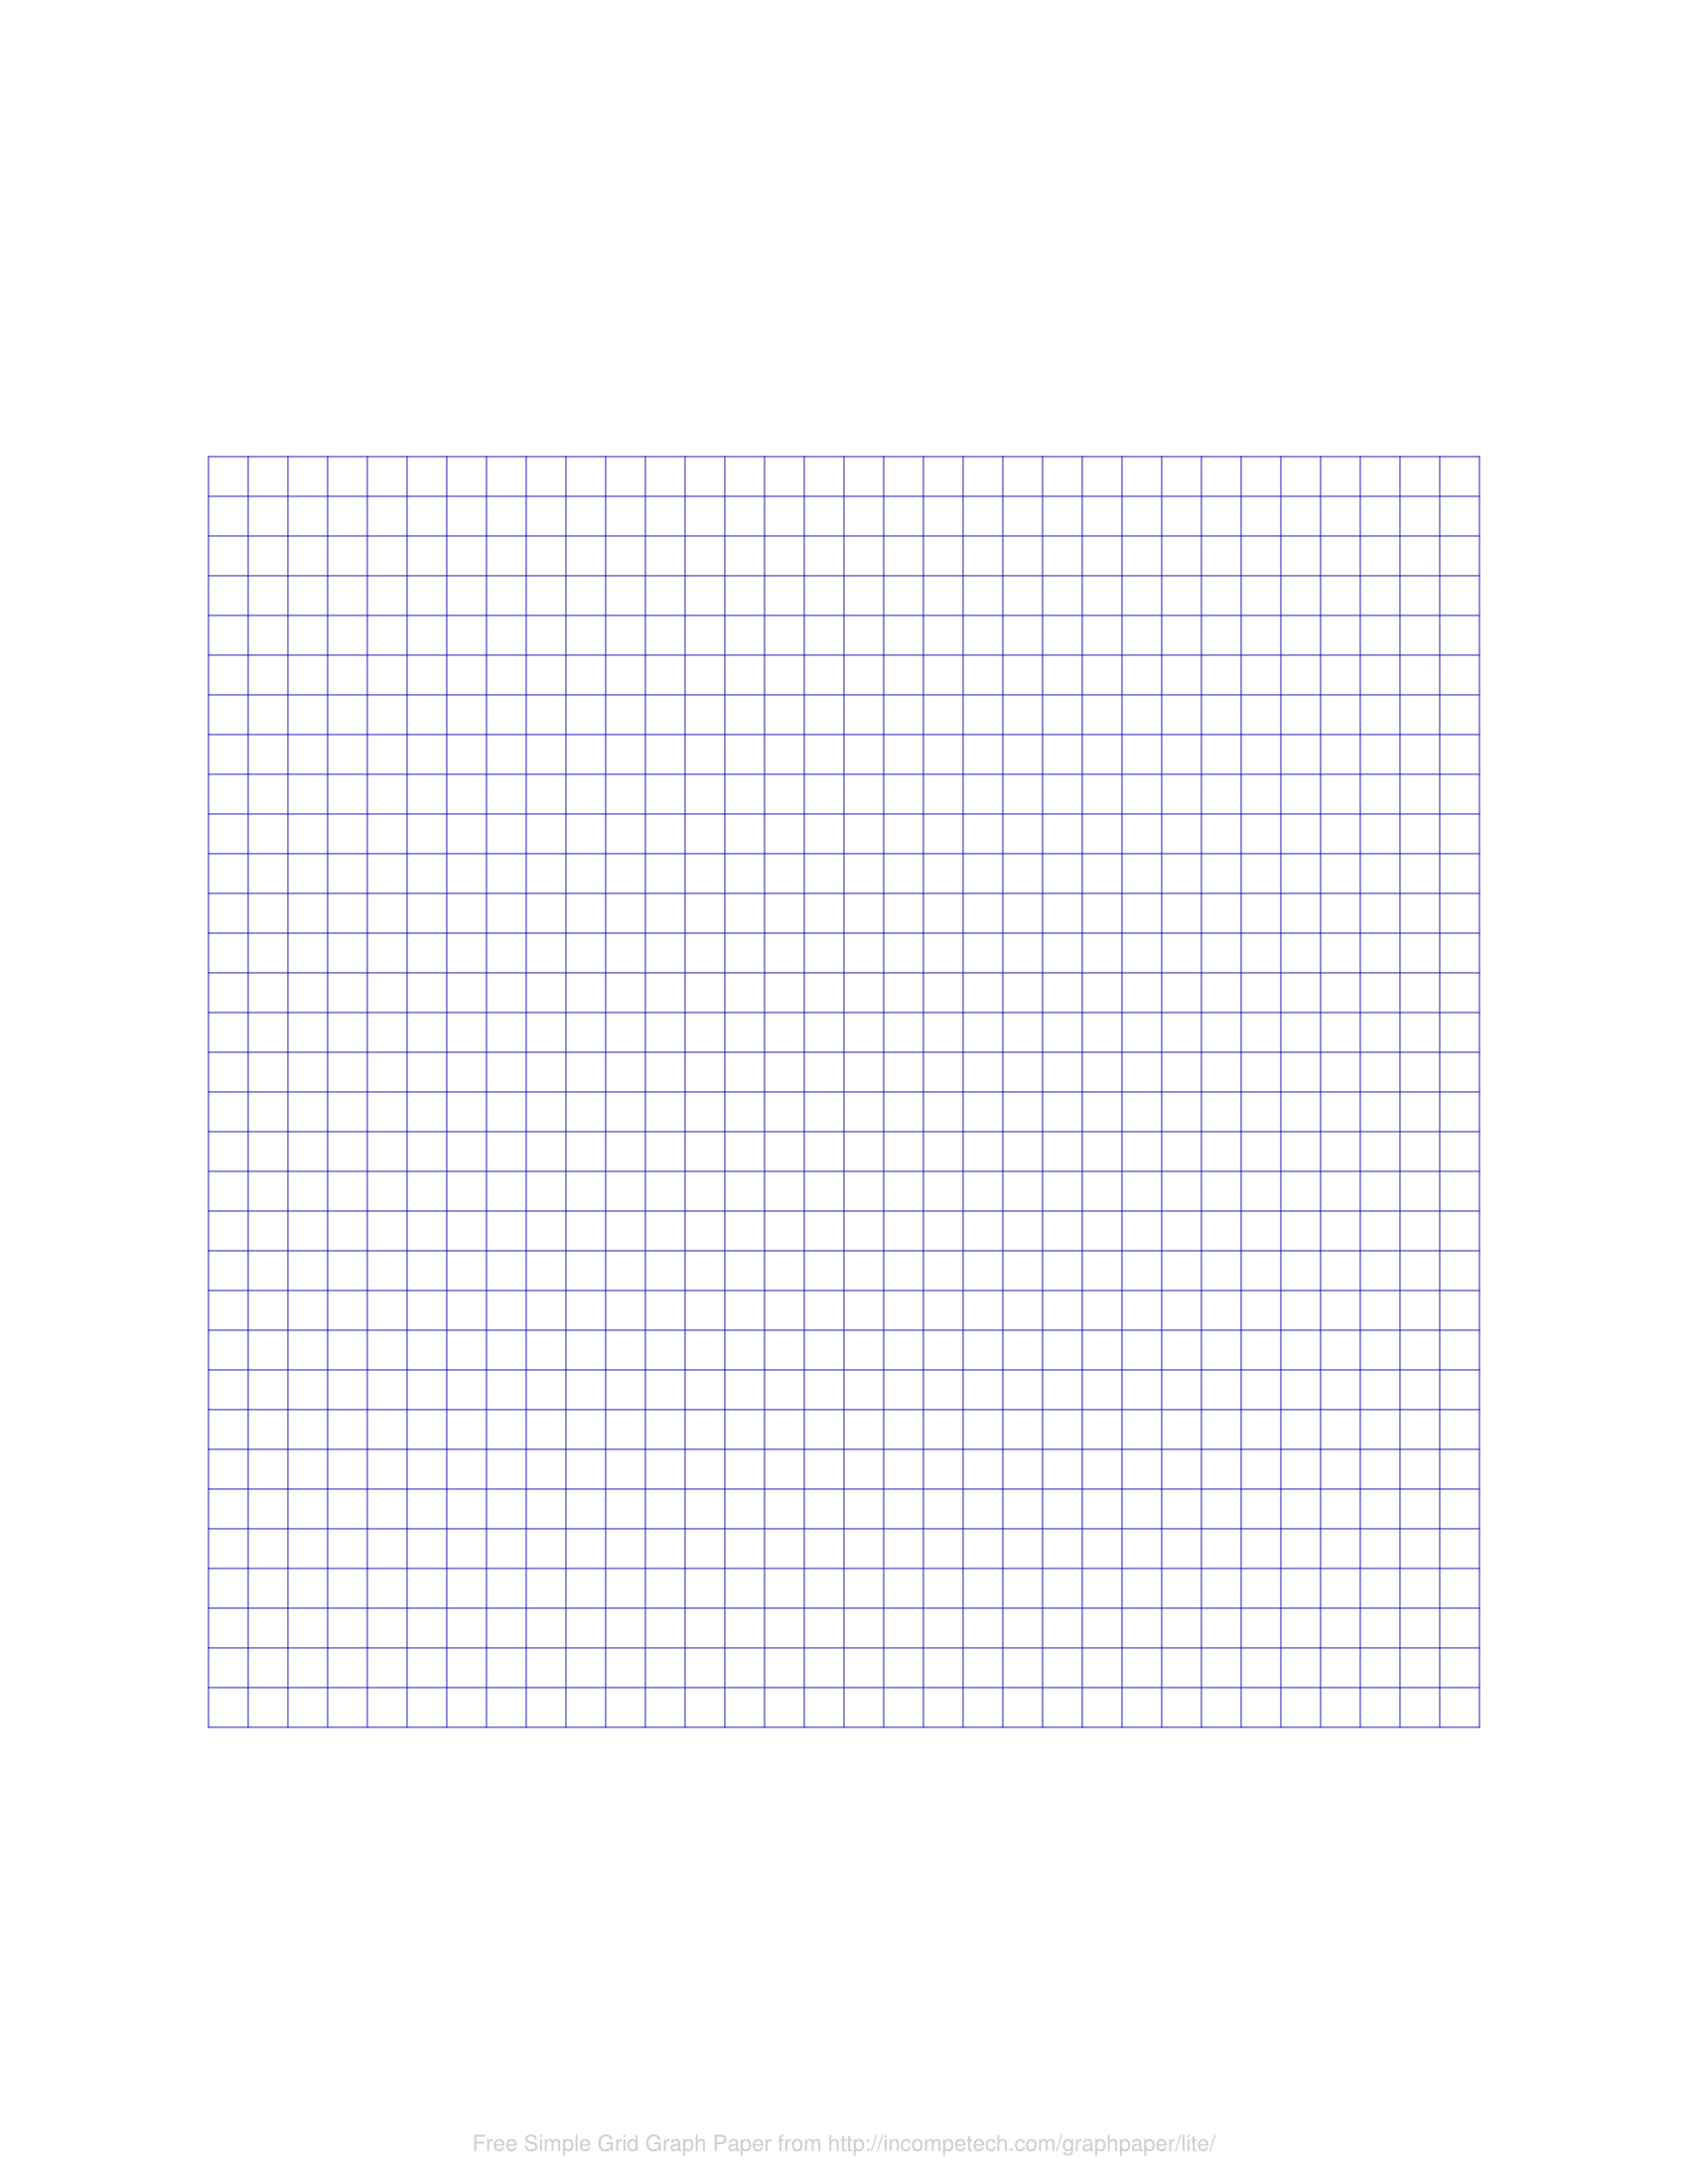 Online Free Printable Blank Graph Paper Template